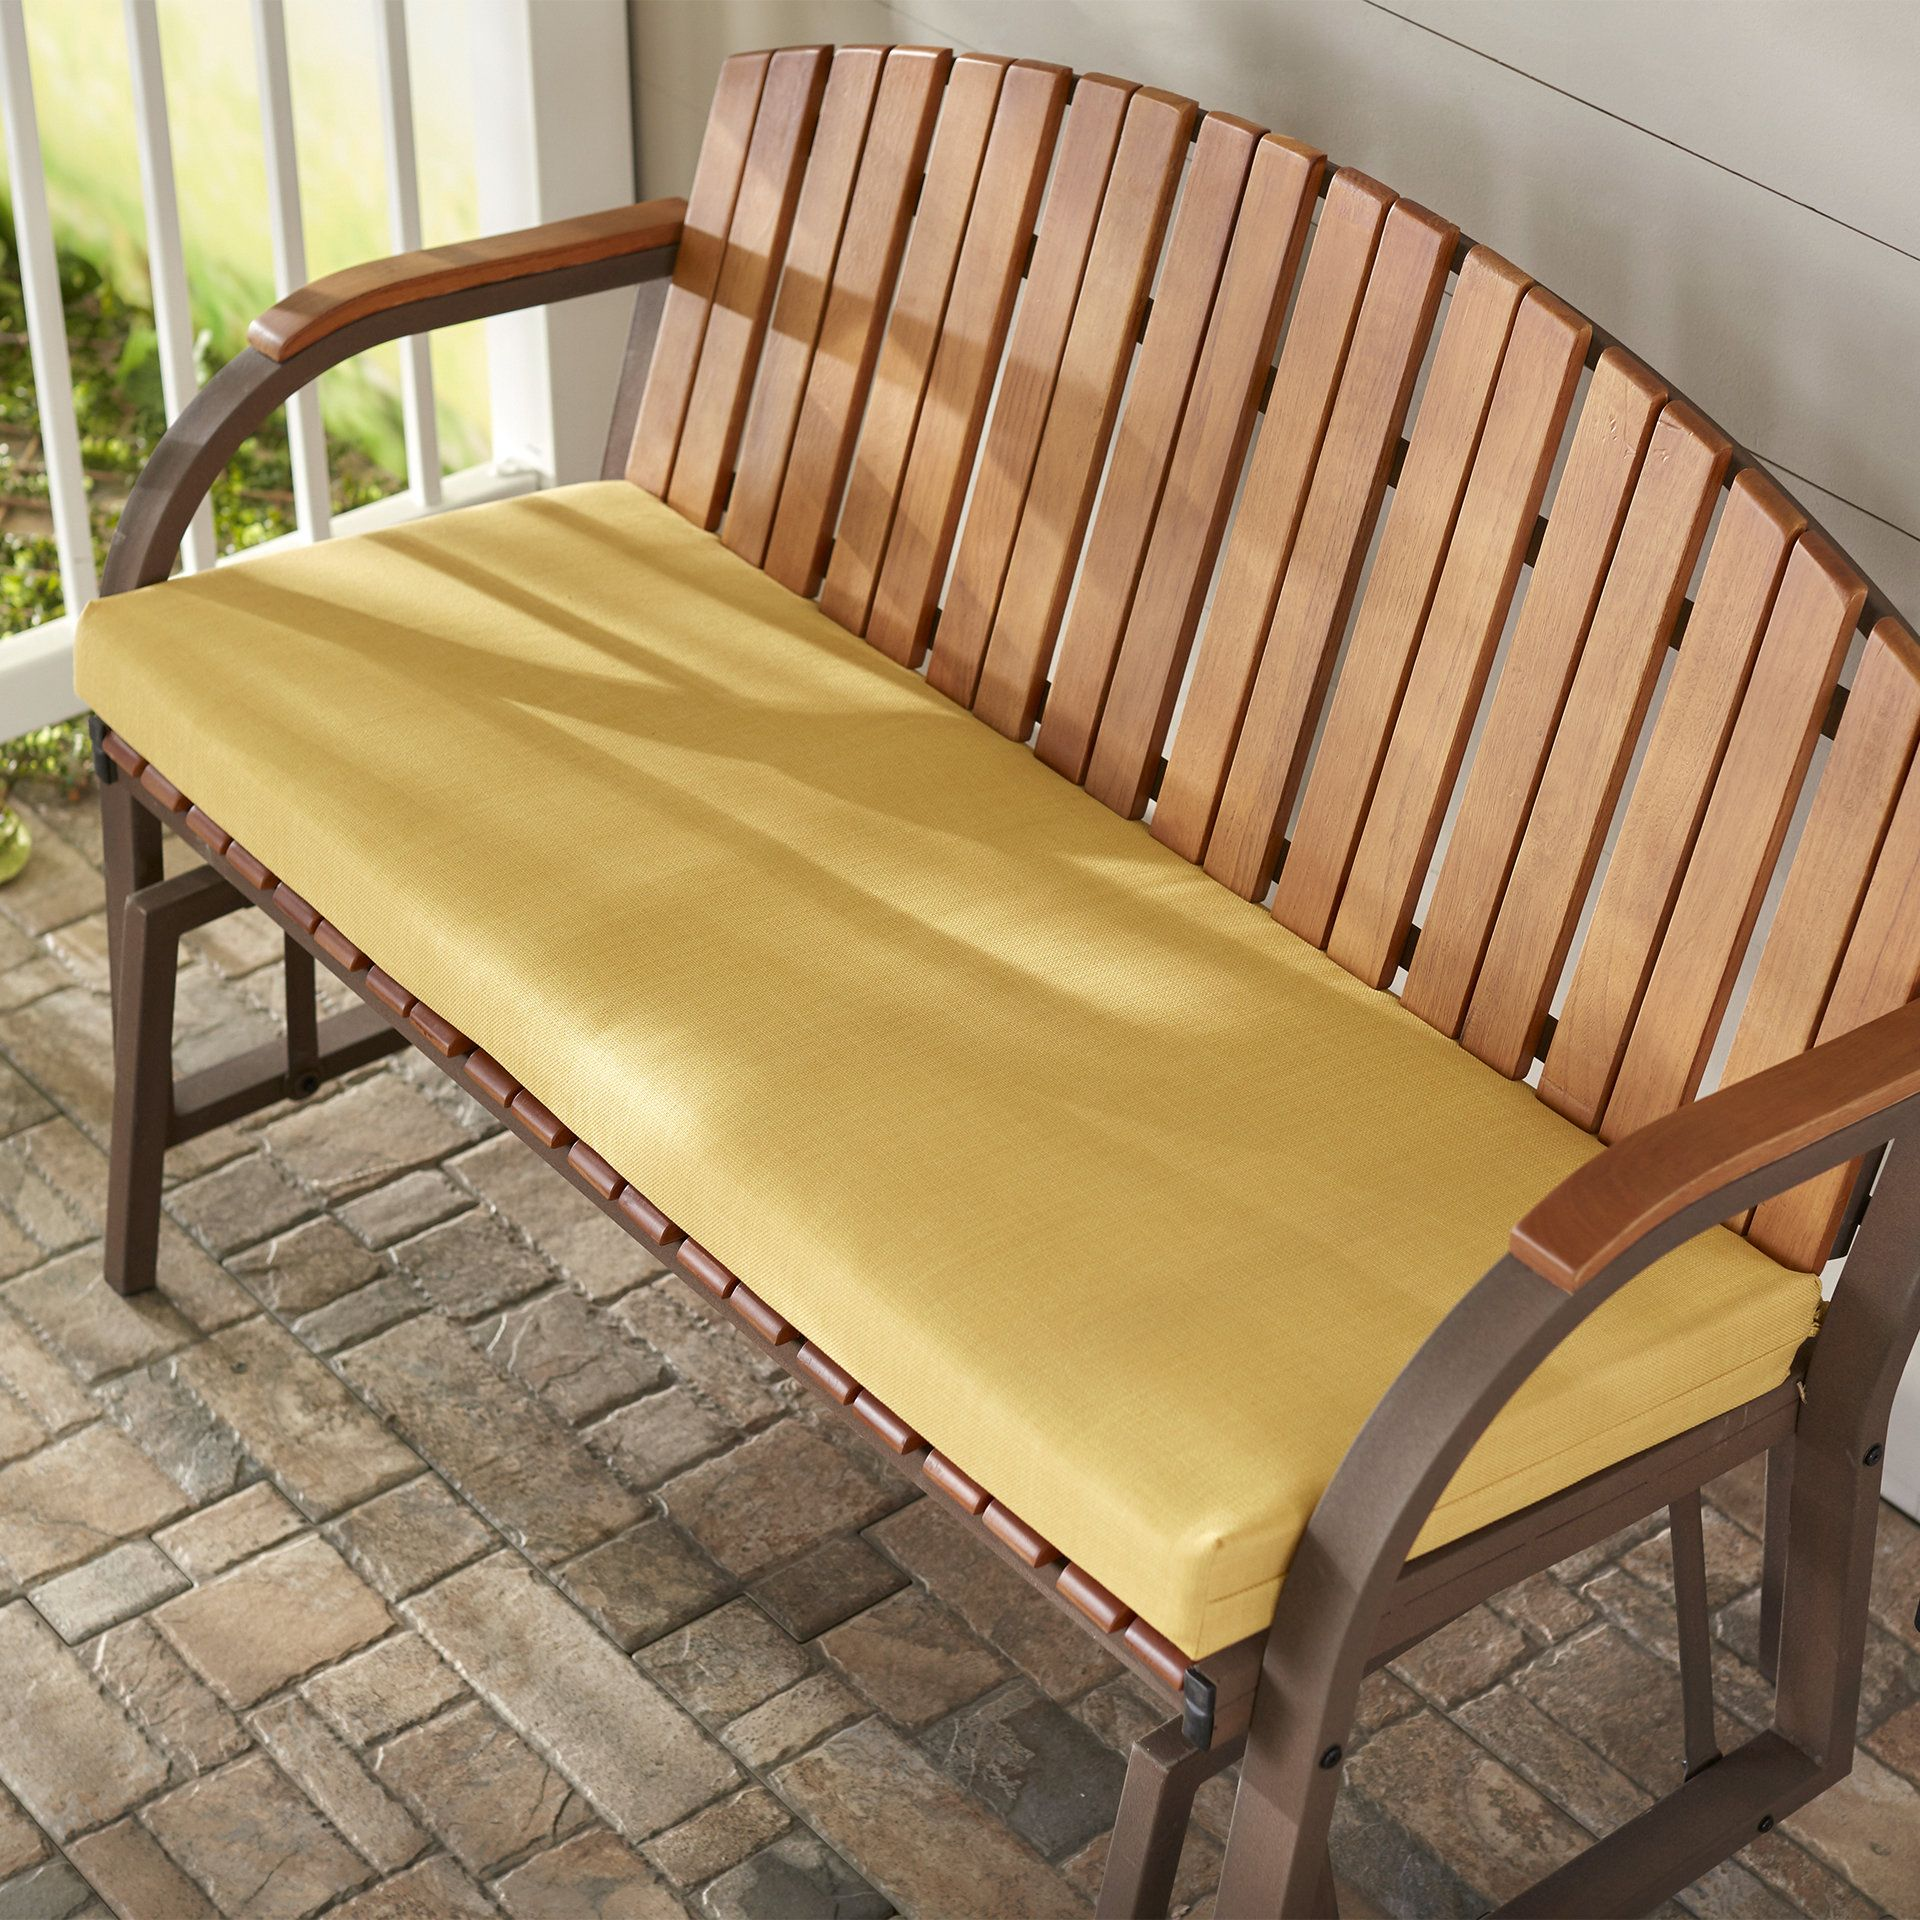 Indoor/Outdoor Bench Cushion Bench cushions, Outdoor